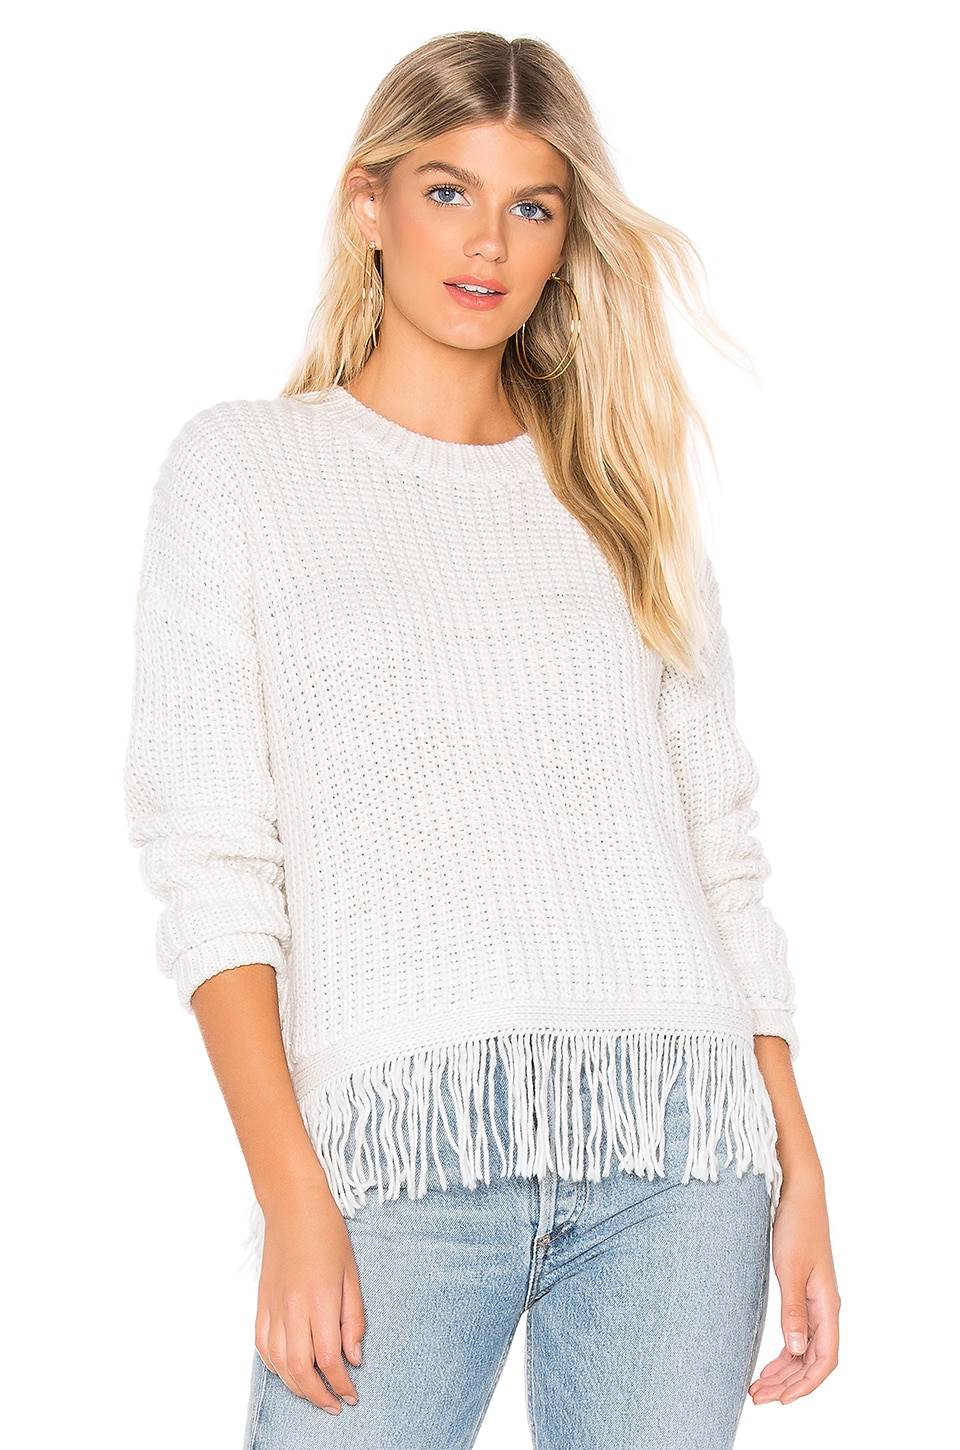 JOHN & JENN BY LINE Troy Sweater in Cream